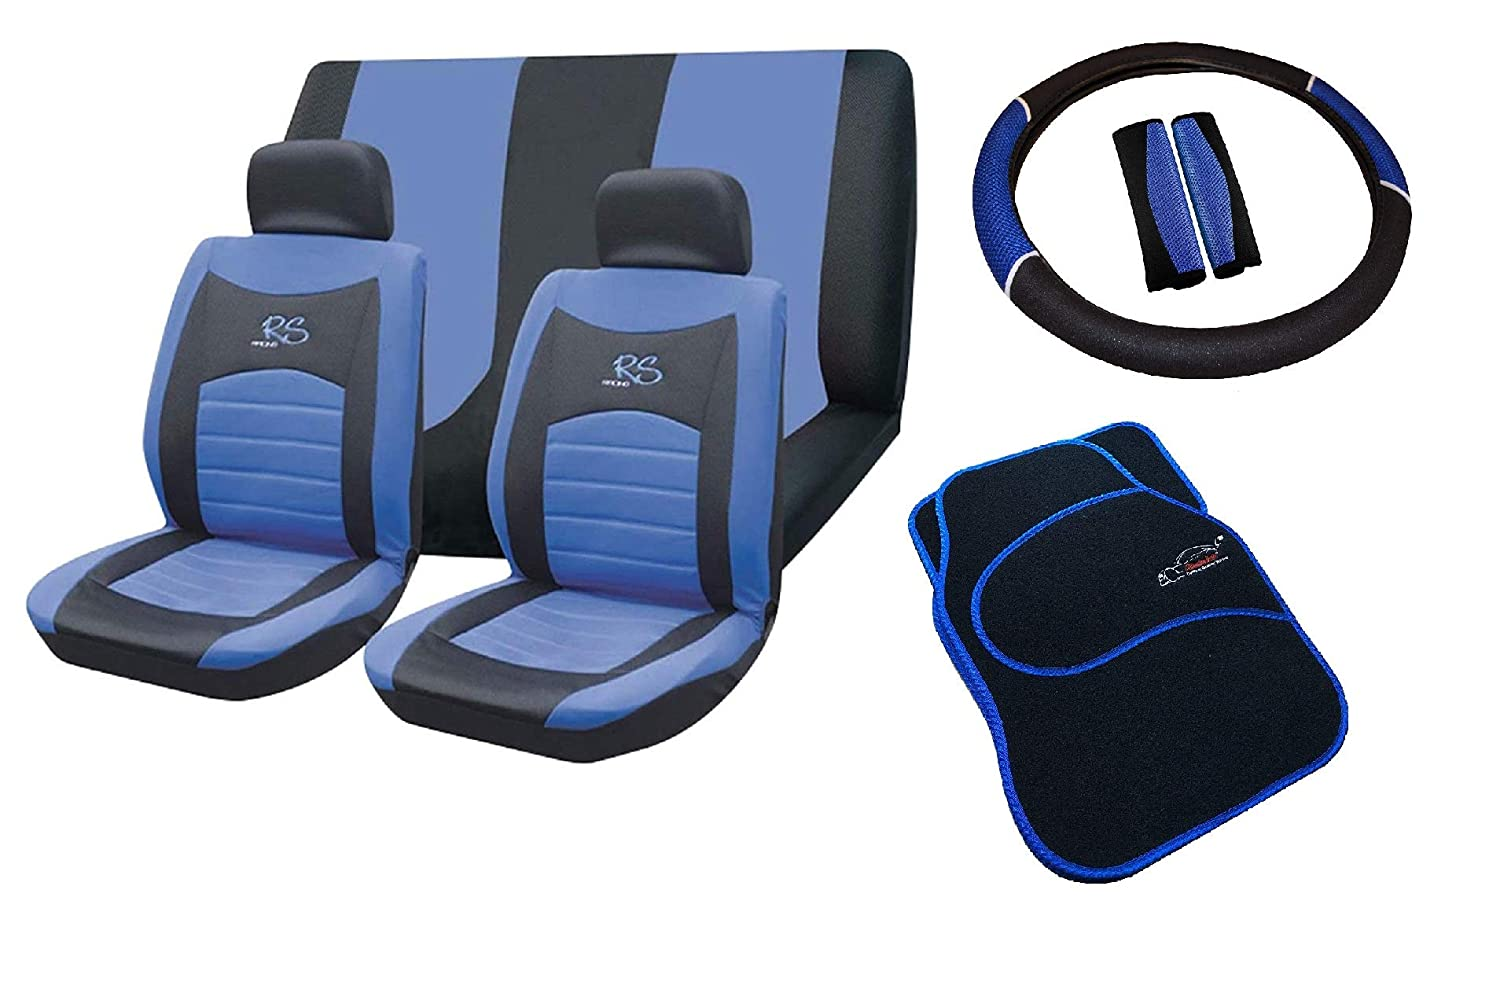 S Diy Car Seat Upholstery Rep – Icalliance